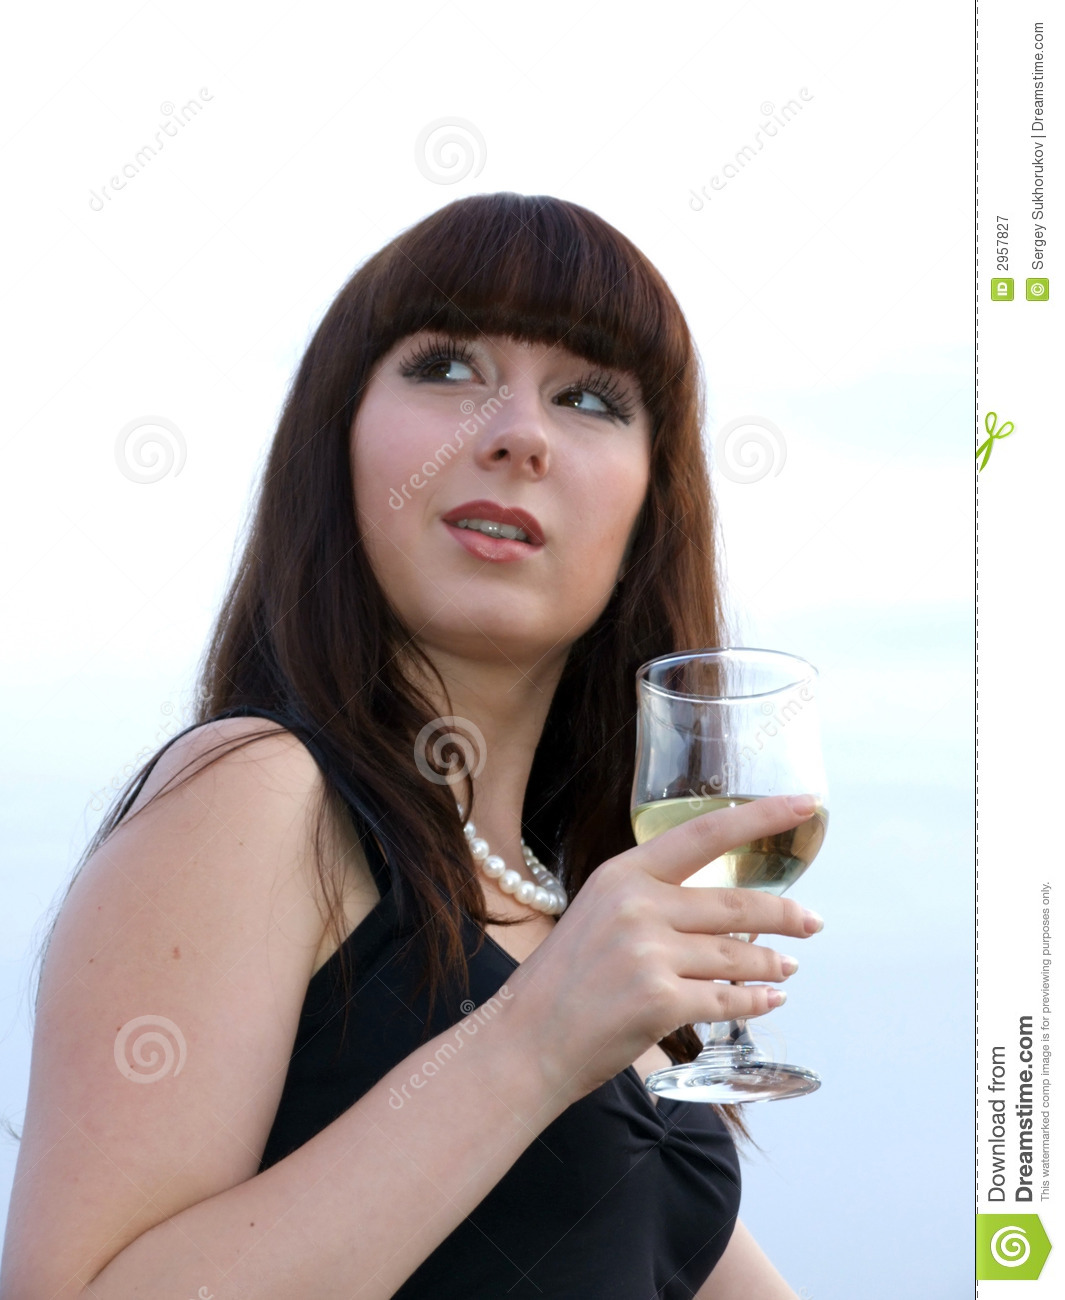 The girl with a glass of wine